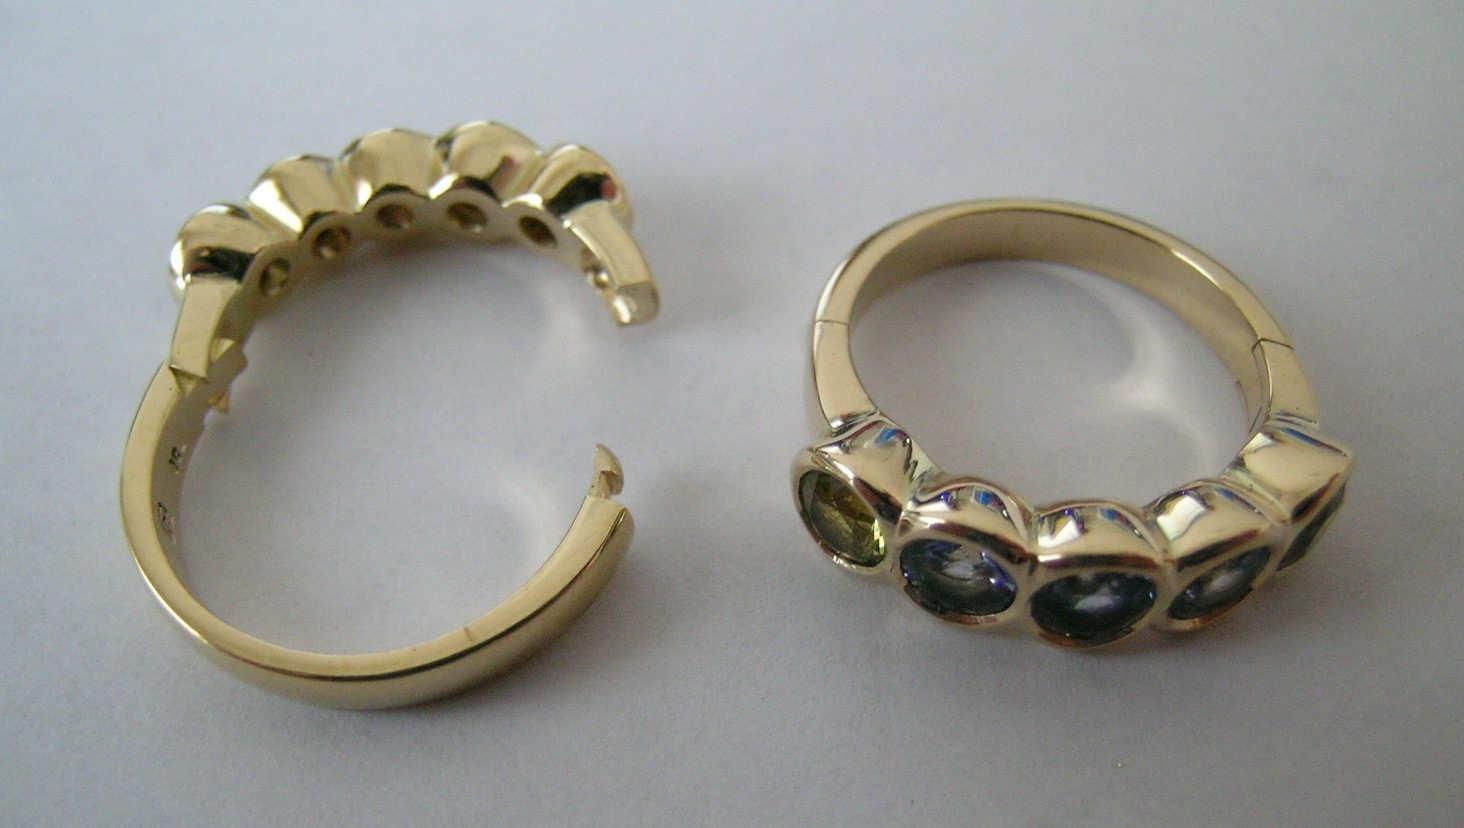 hinged wedding ring Hinged ring for difficult to fit fingers